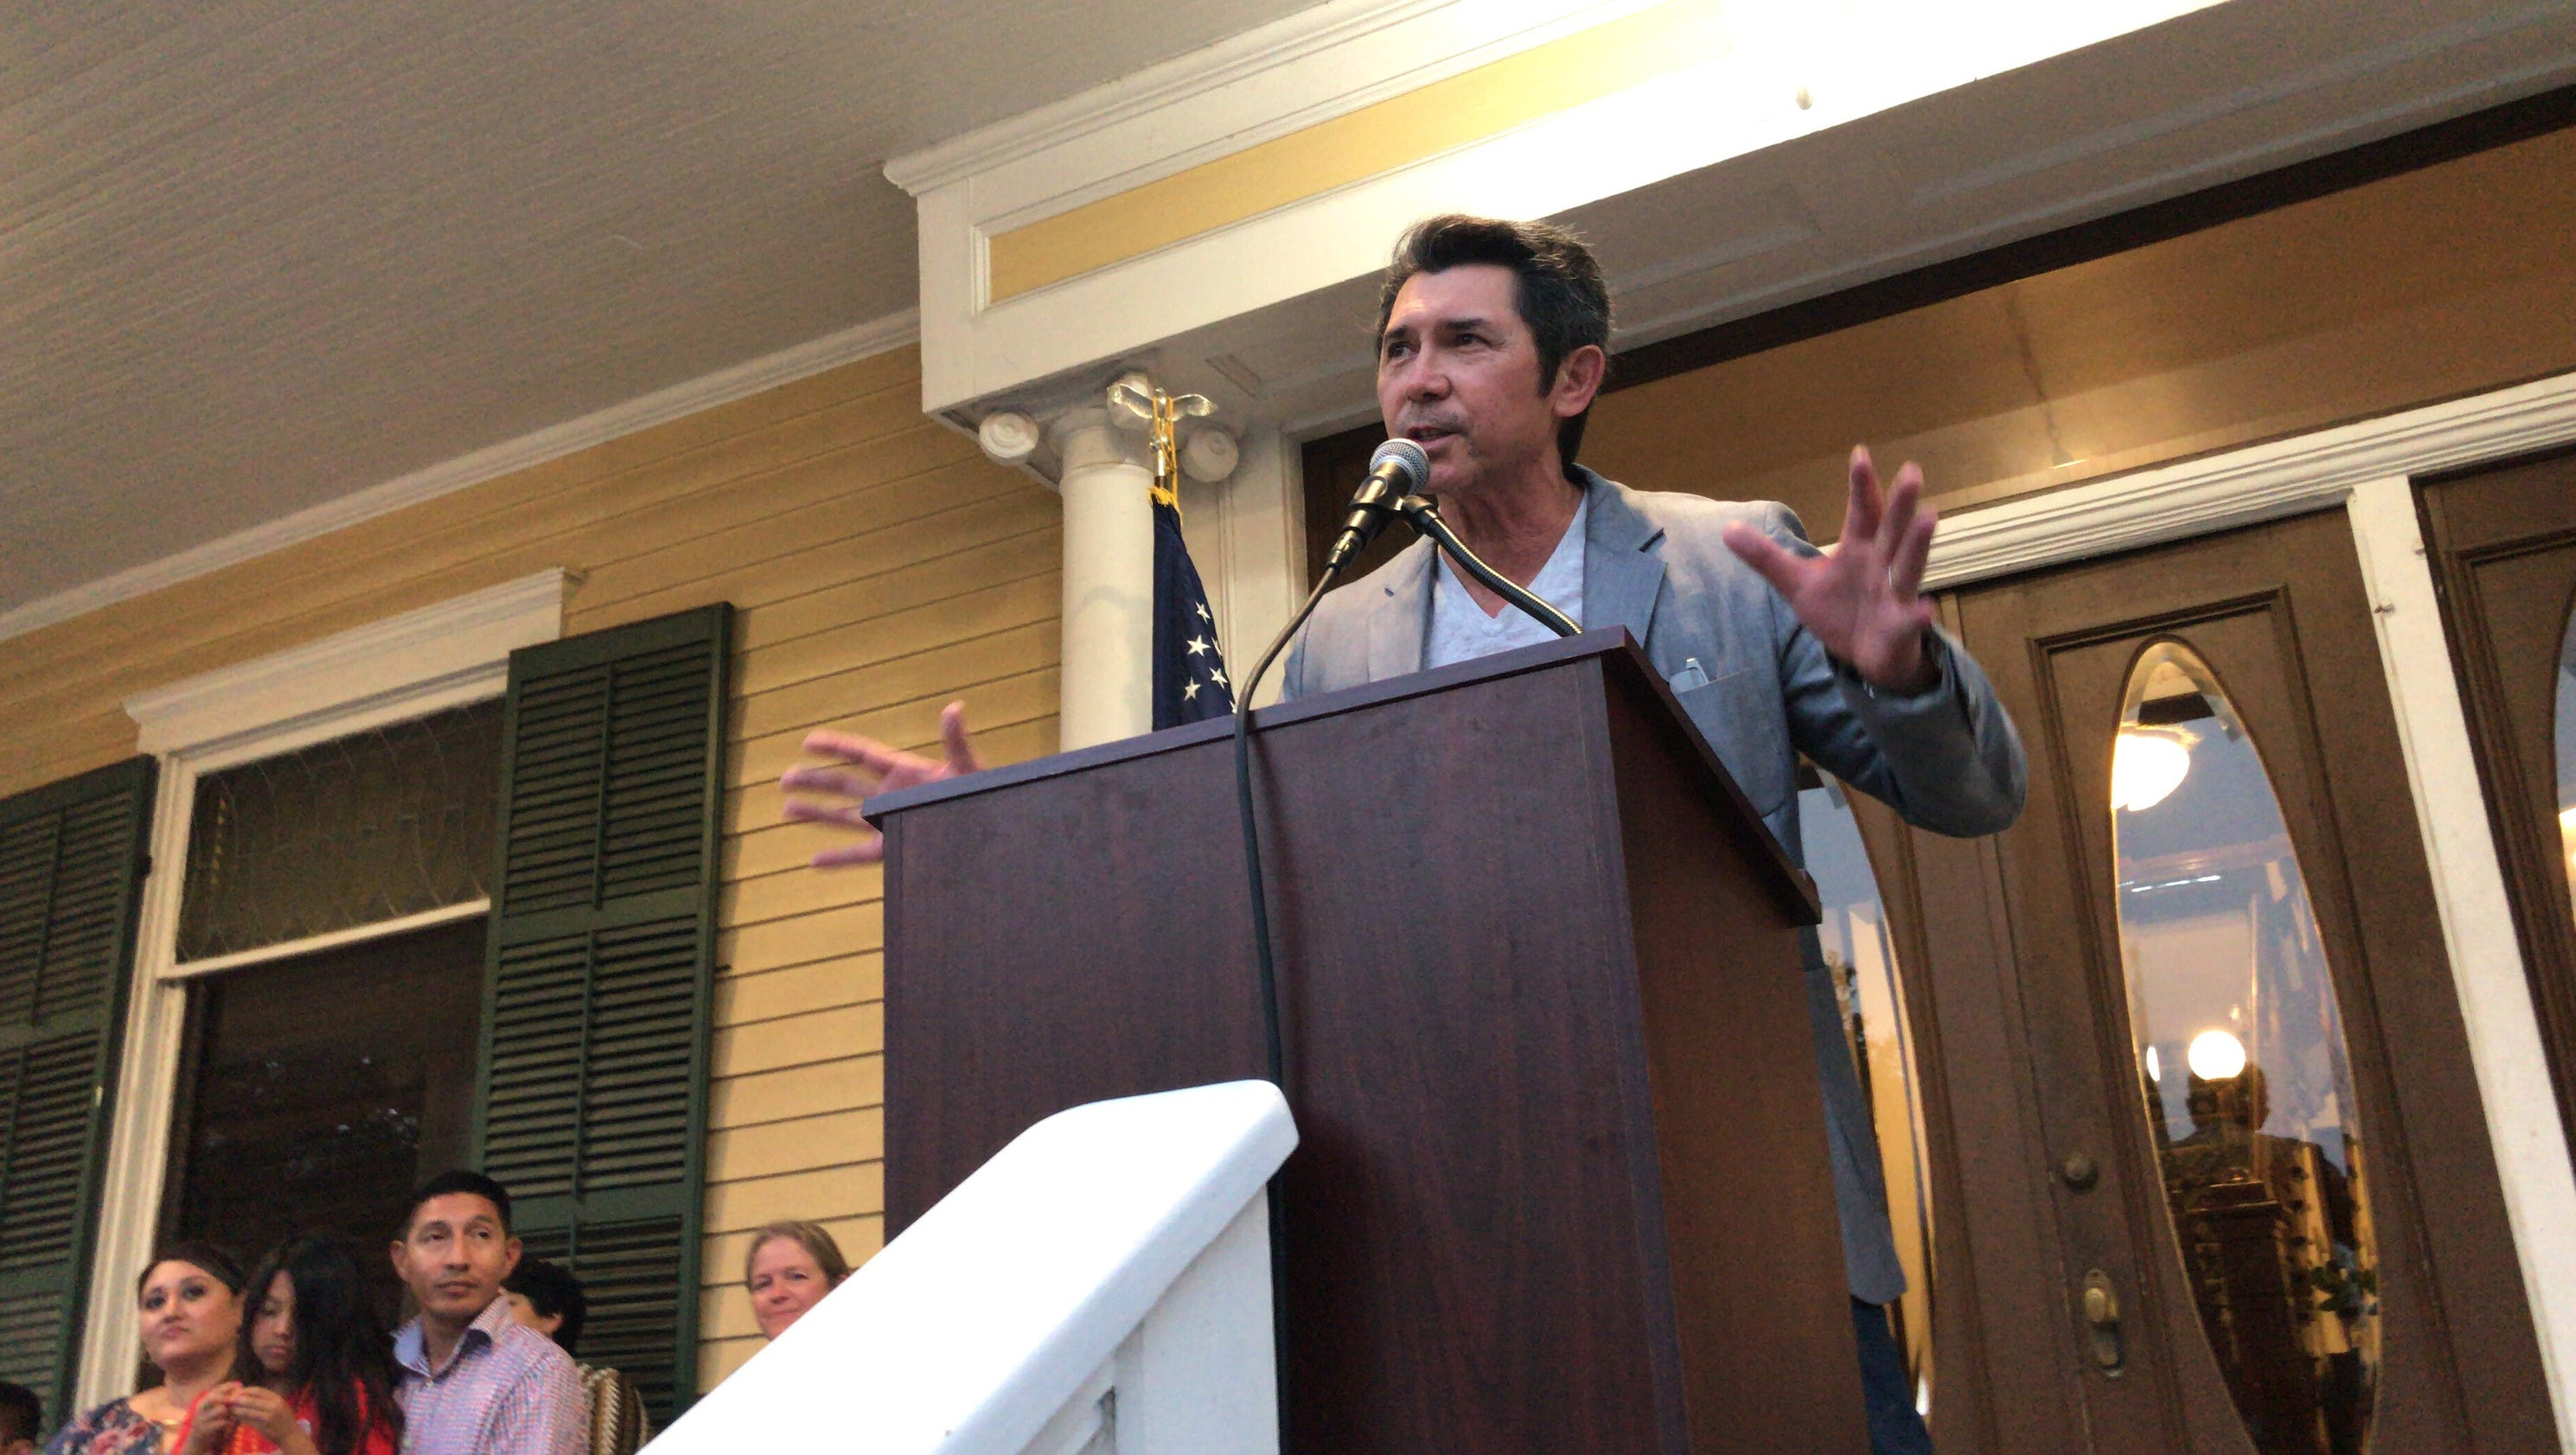 Lou Diamond Phillips apologizes for arrest at Texas history event